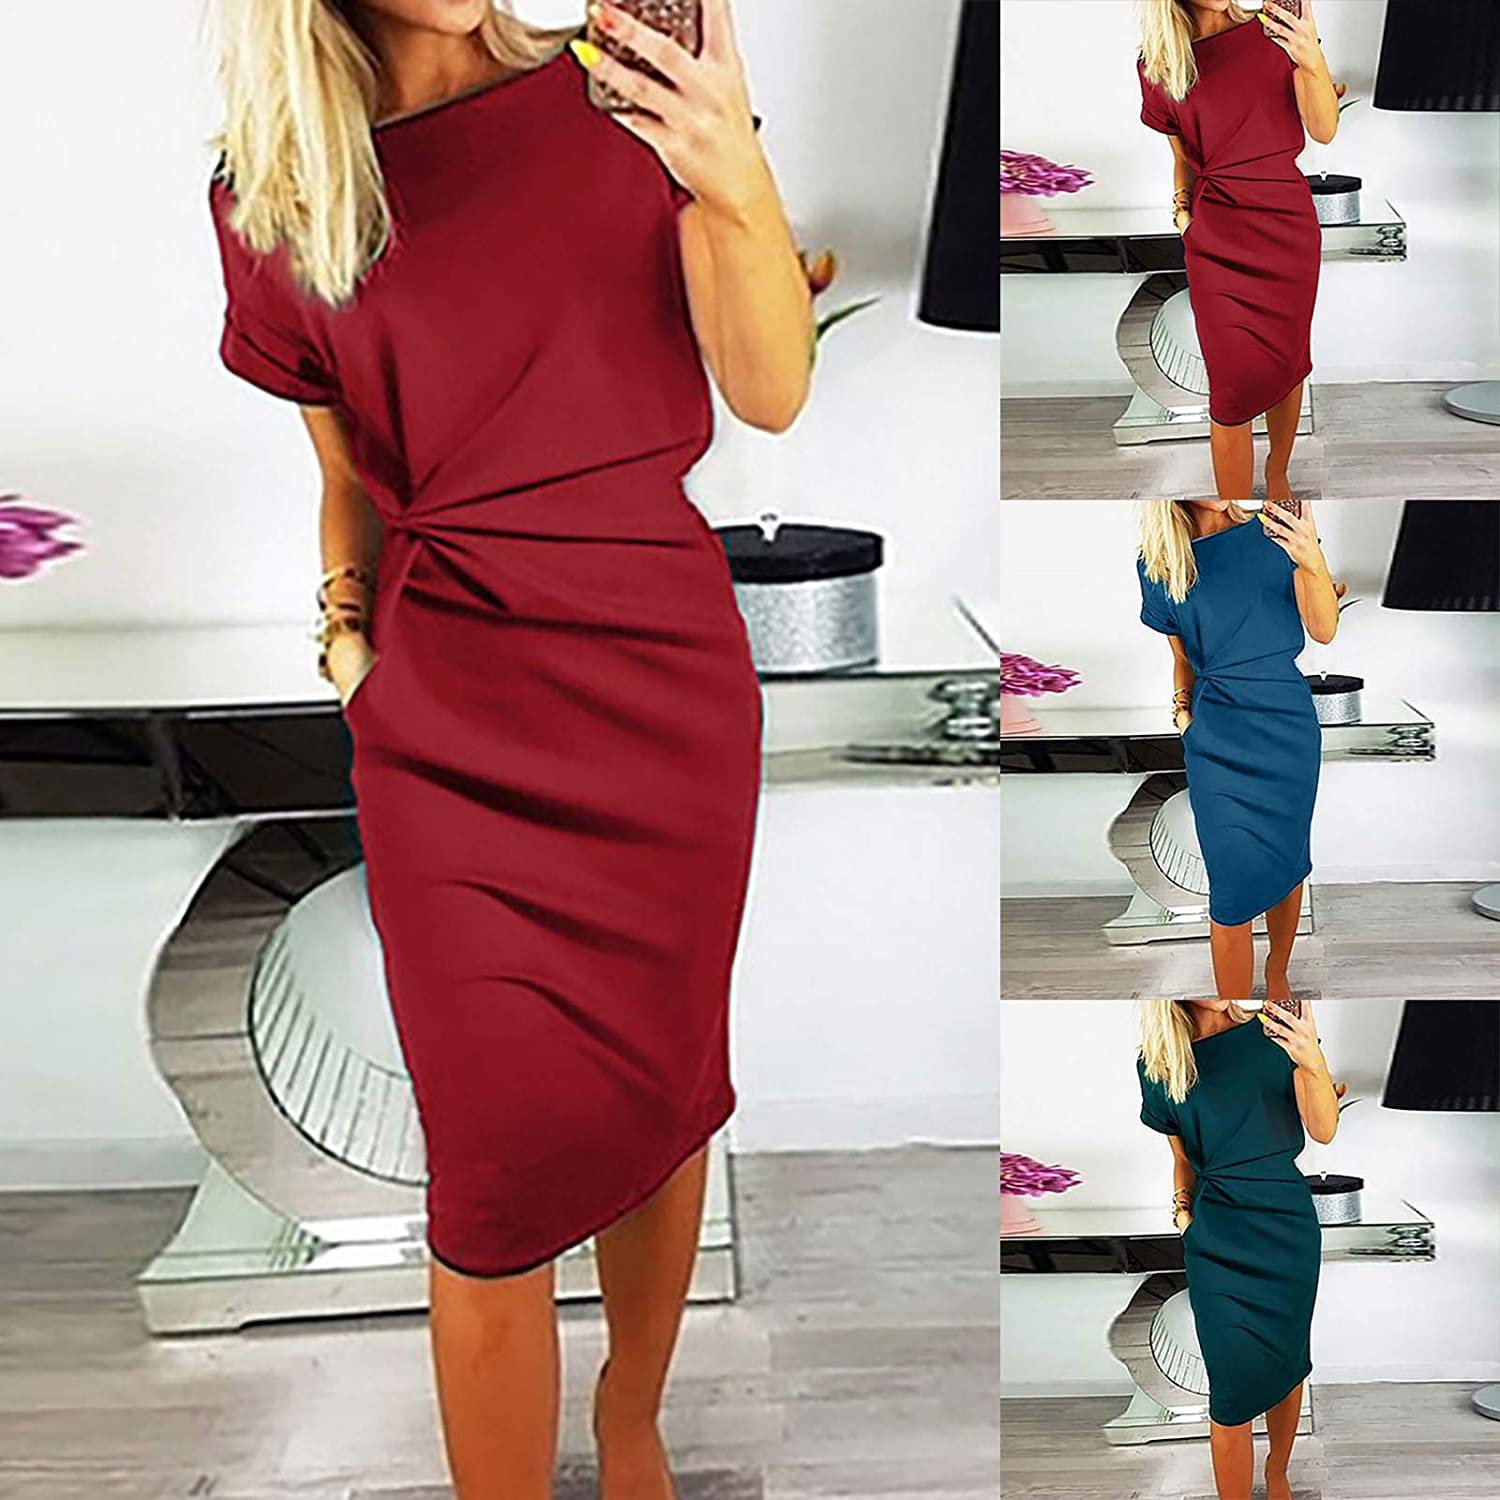 Dresses for Women Casual, Women' s Fashion Cool Solid Color Casual Formol Party Short Sleeve Elegant Dress